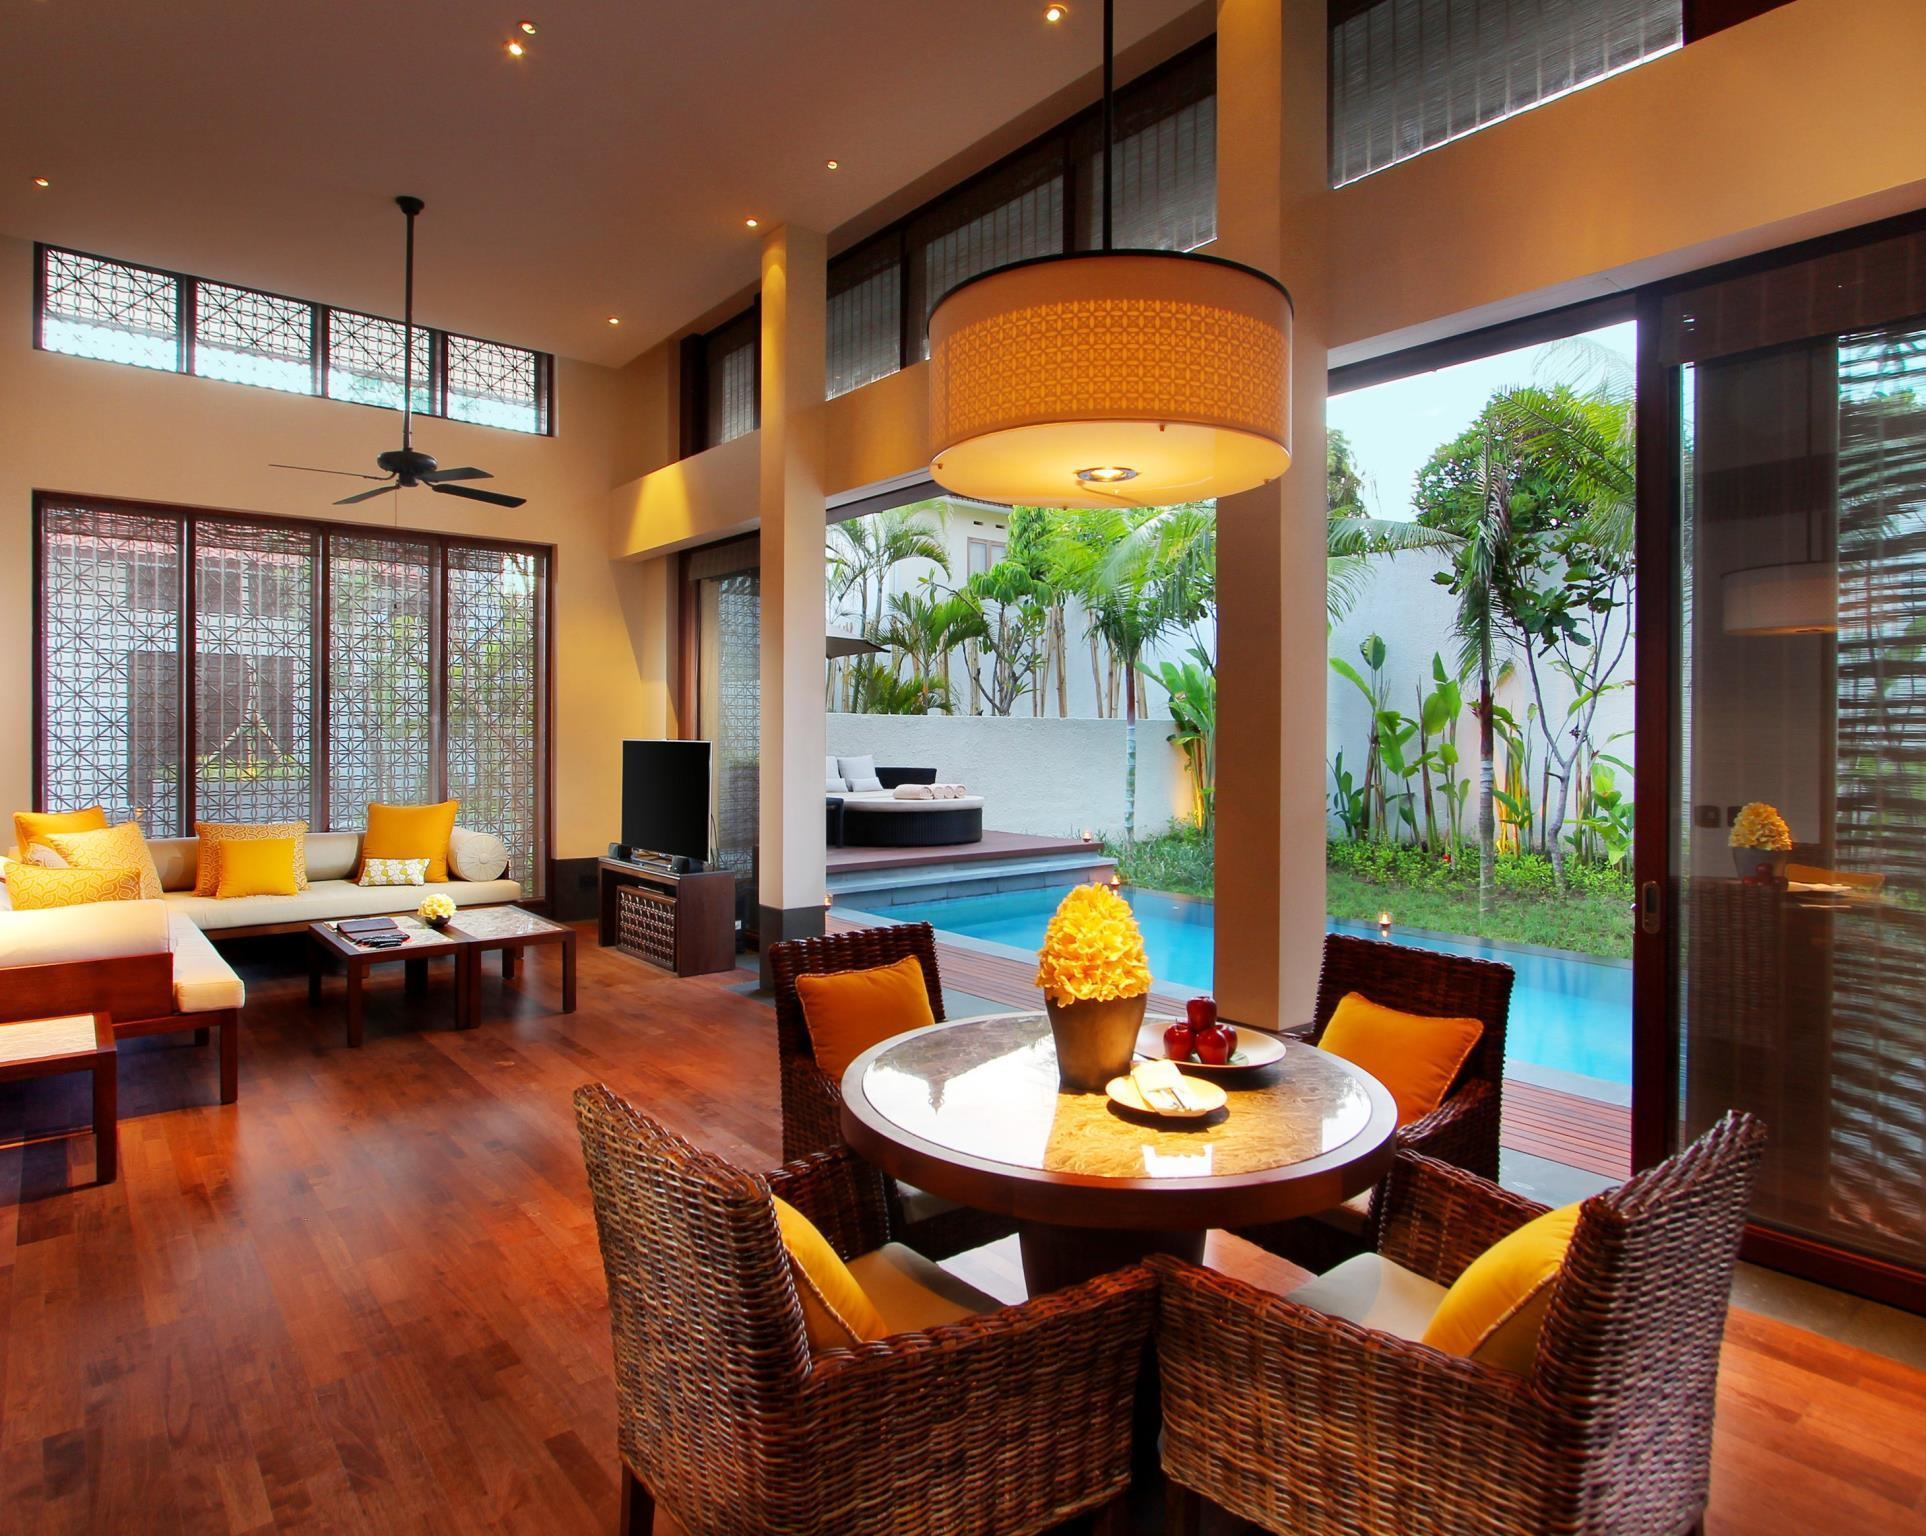 Best price on fairmont sanur beach bali in bali reviews see photos and details sciox Gallery